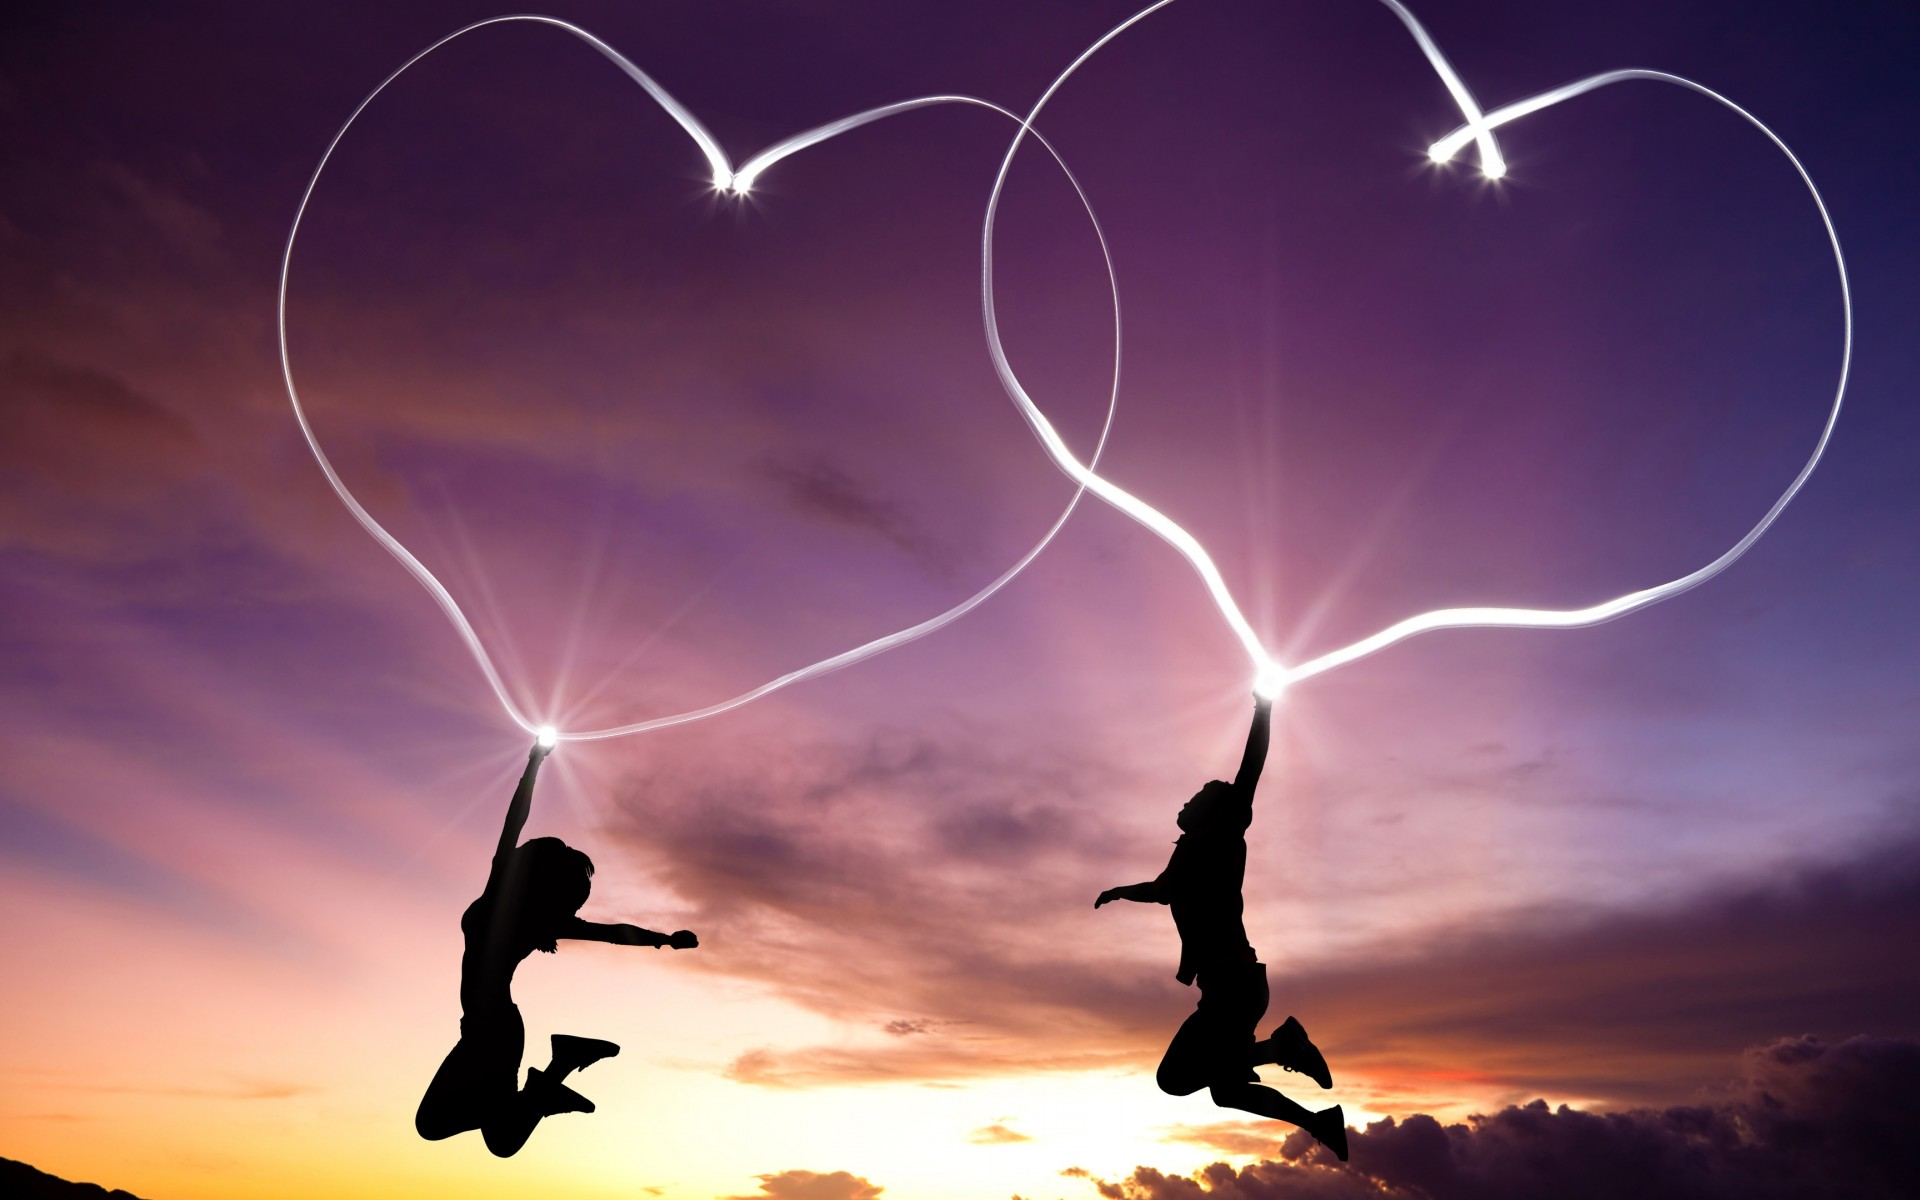 Lovers wallpapers for mobile free download